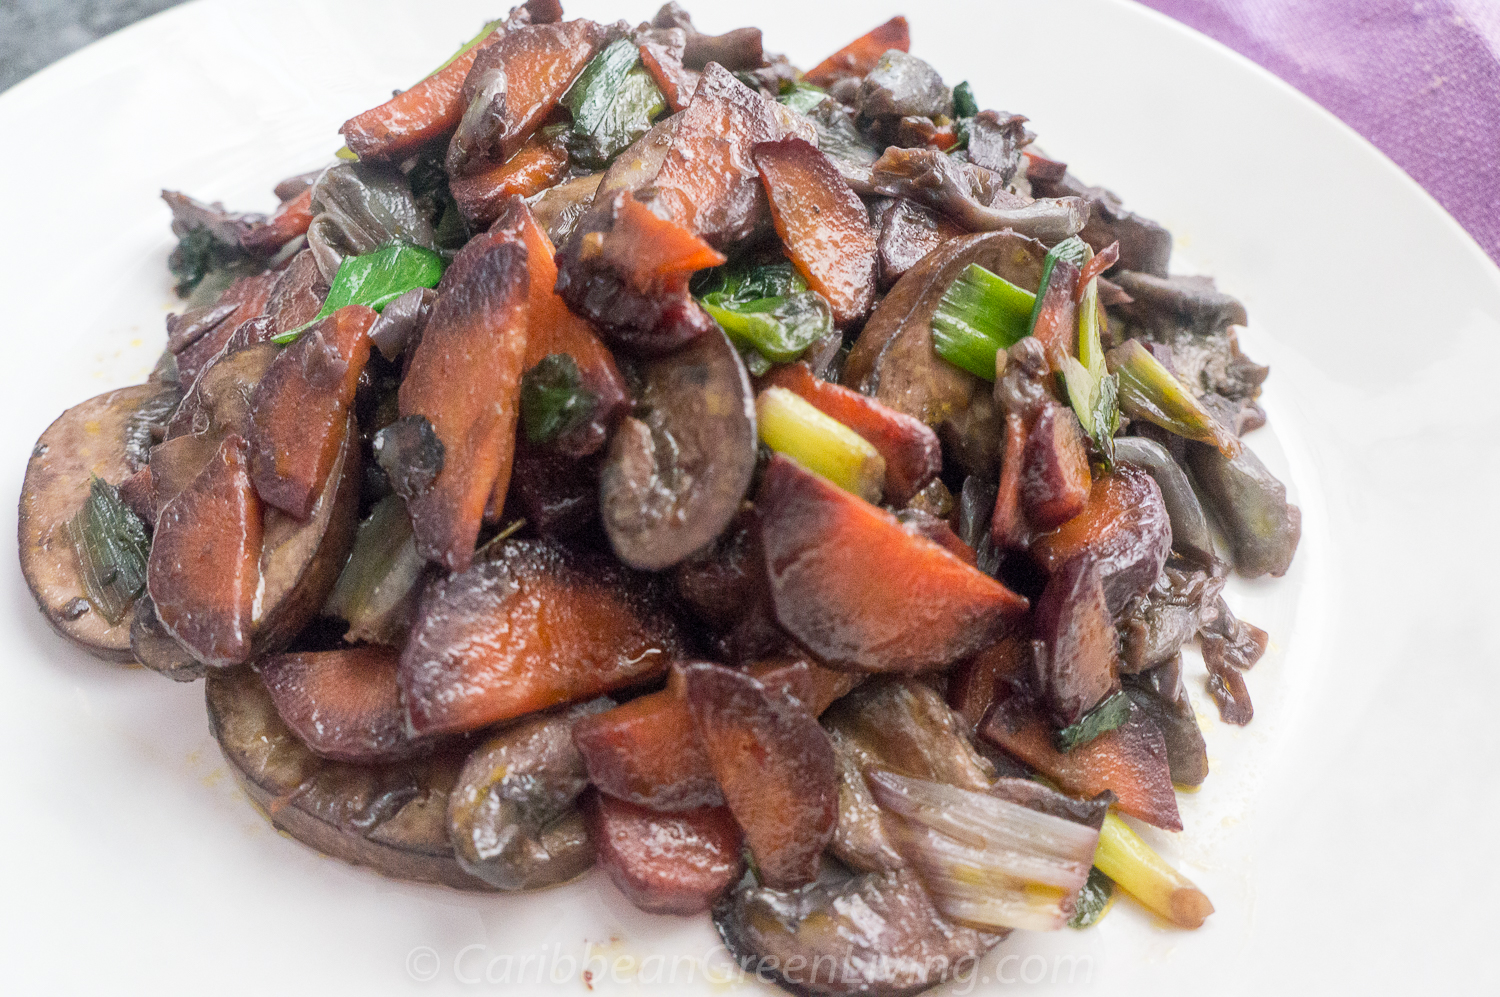 Sautéed Mushrooms, Purple Carrots and Scallions